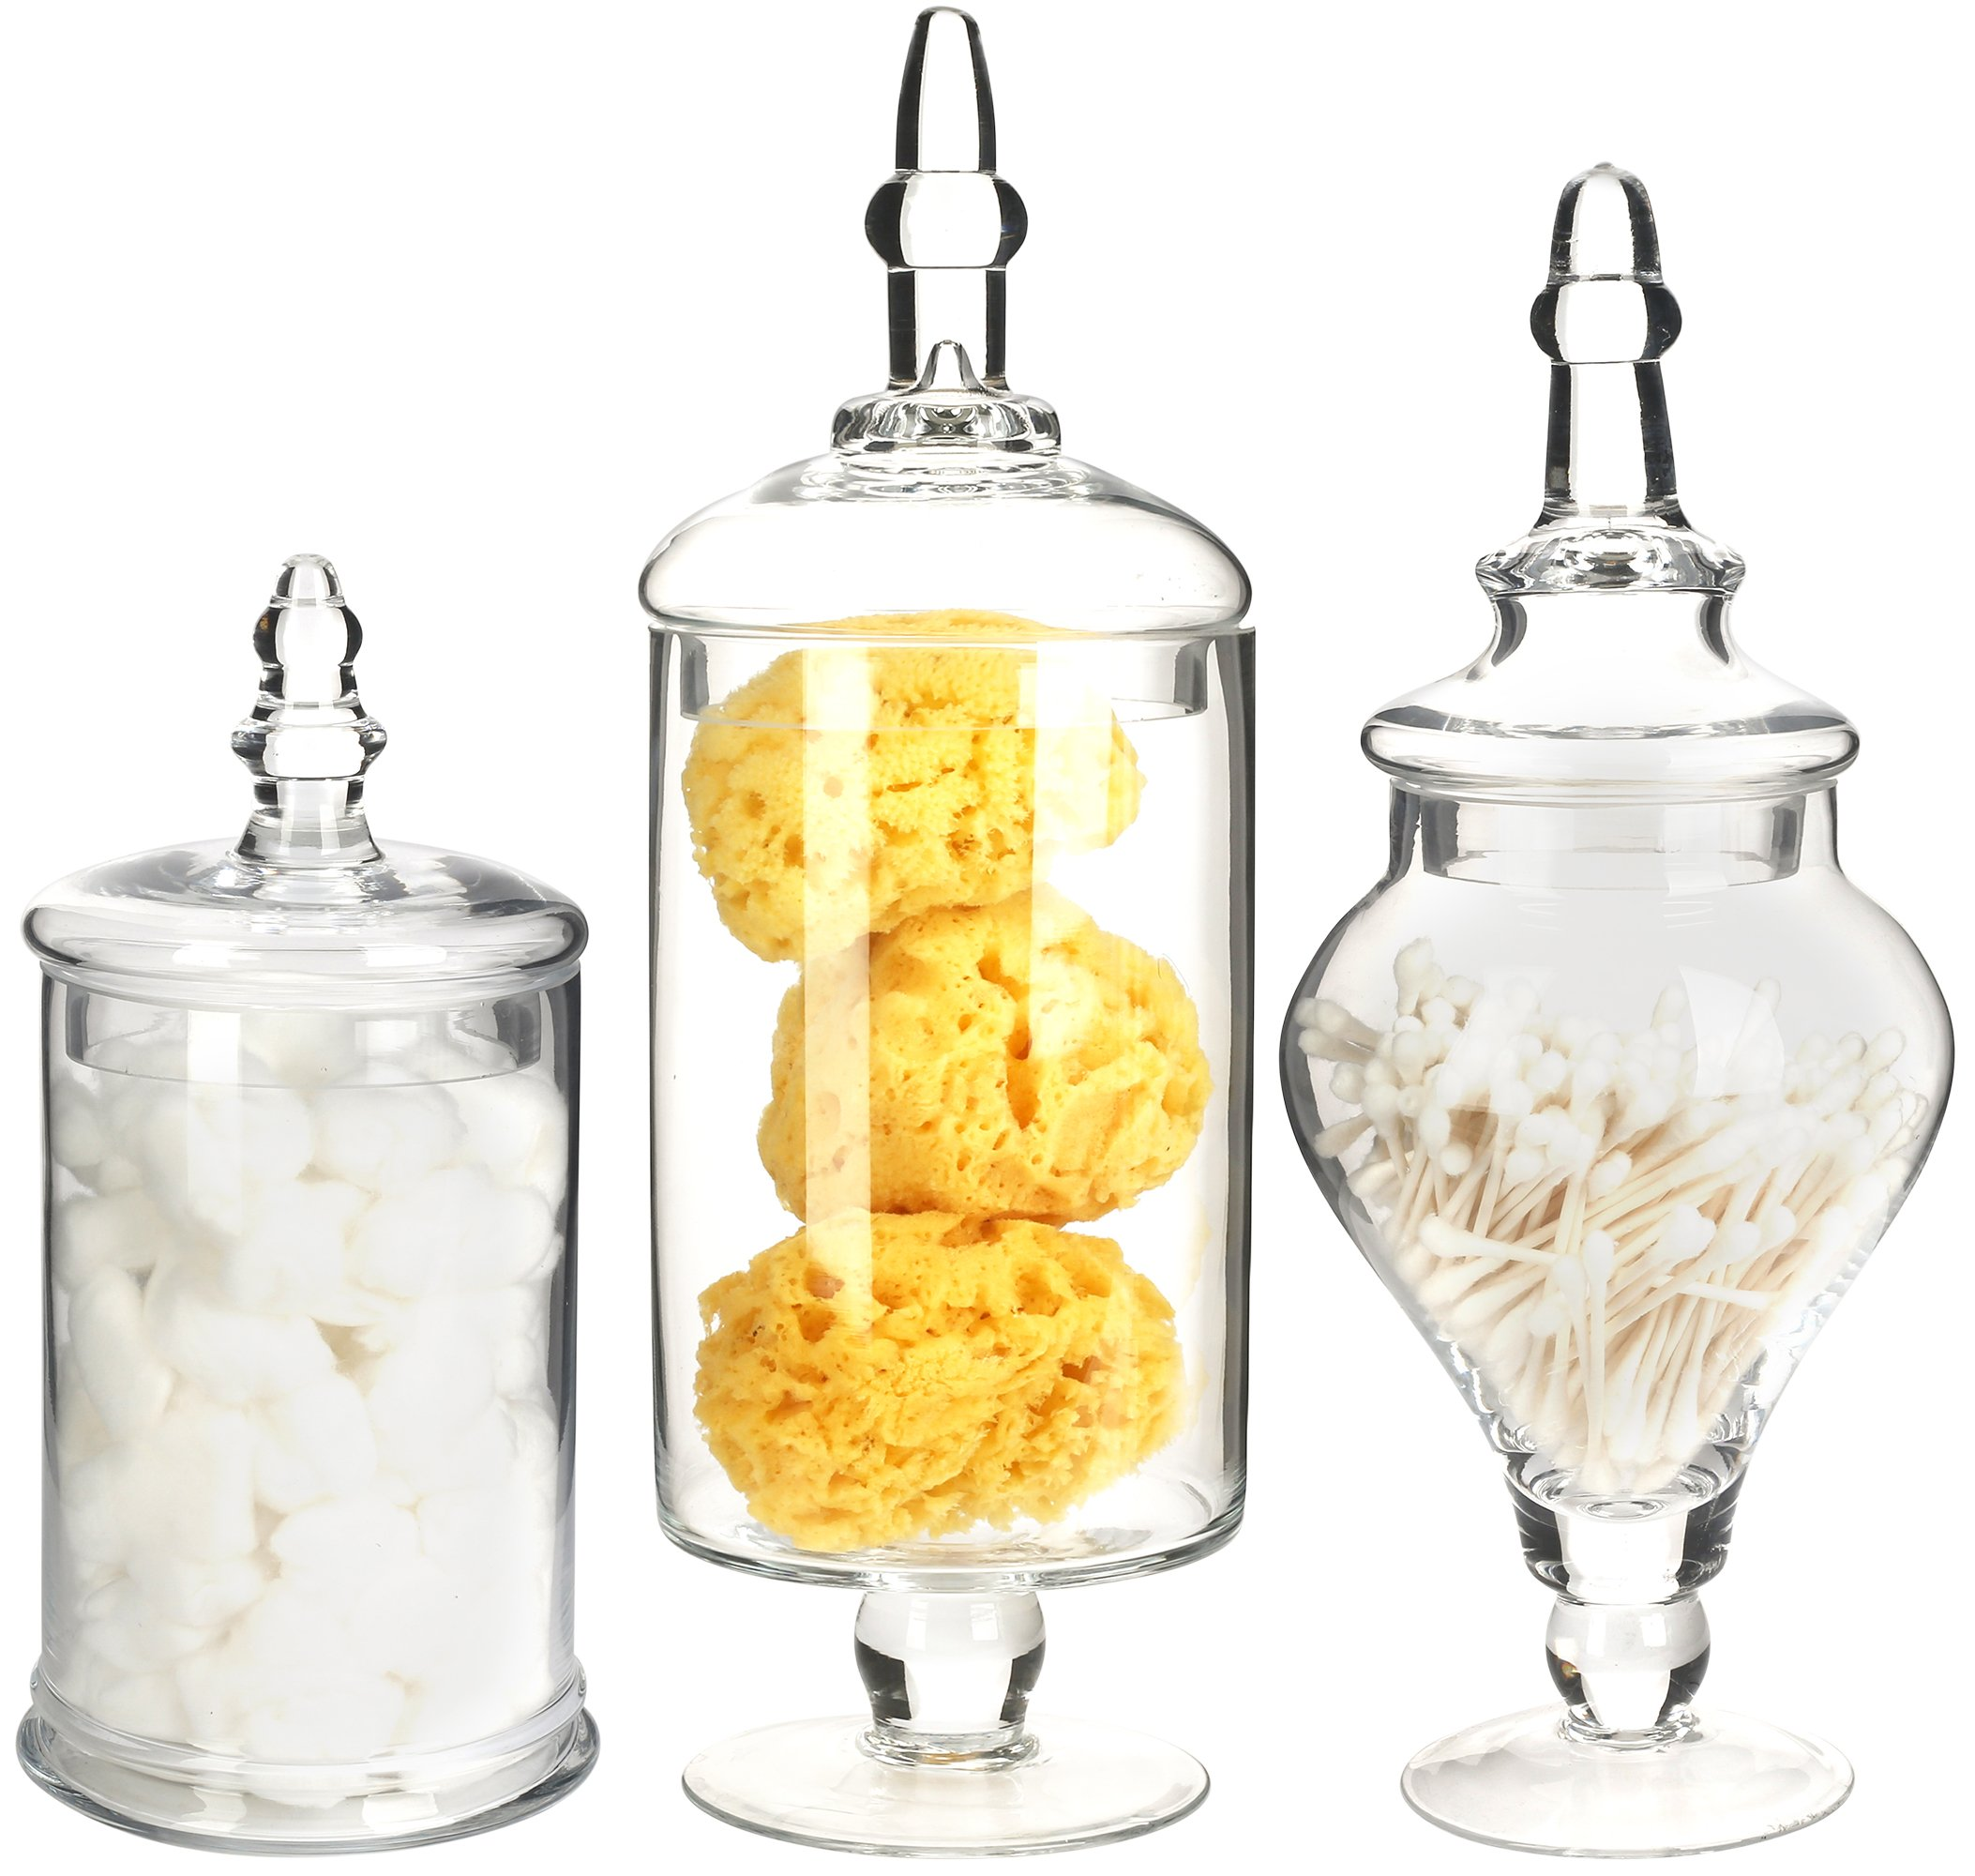 Mantello Decor Glass Apothecary Jars (Clear, Medium Large, Set of 3) by Mantello